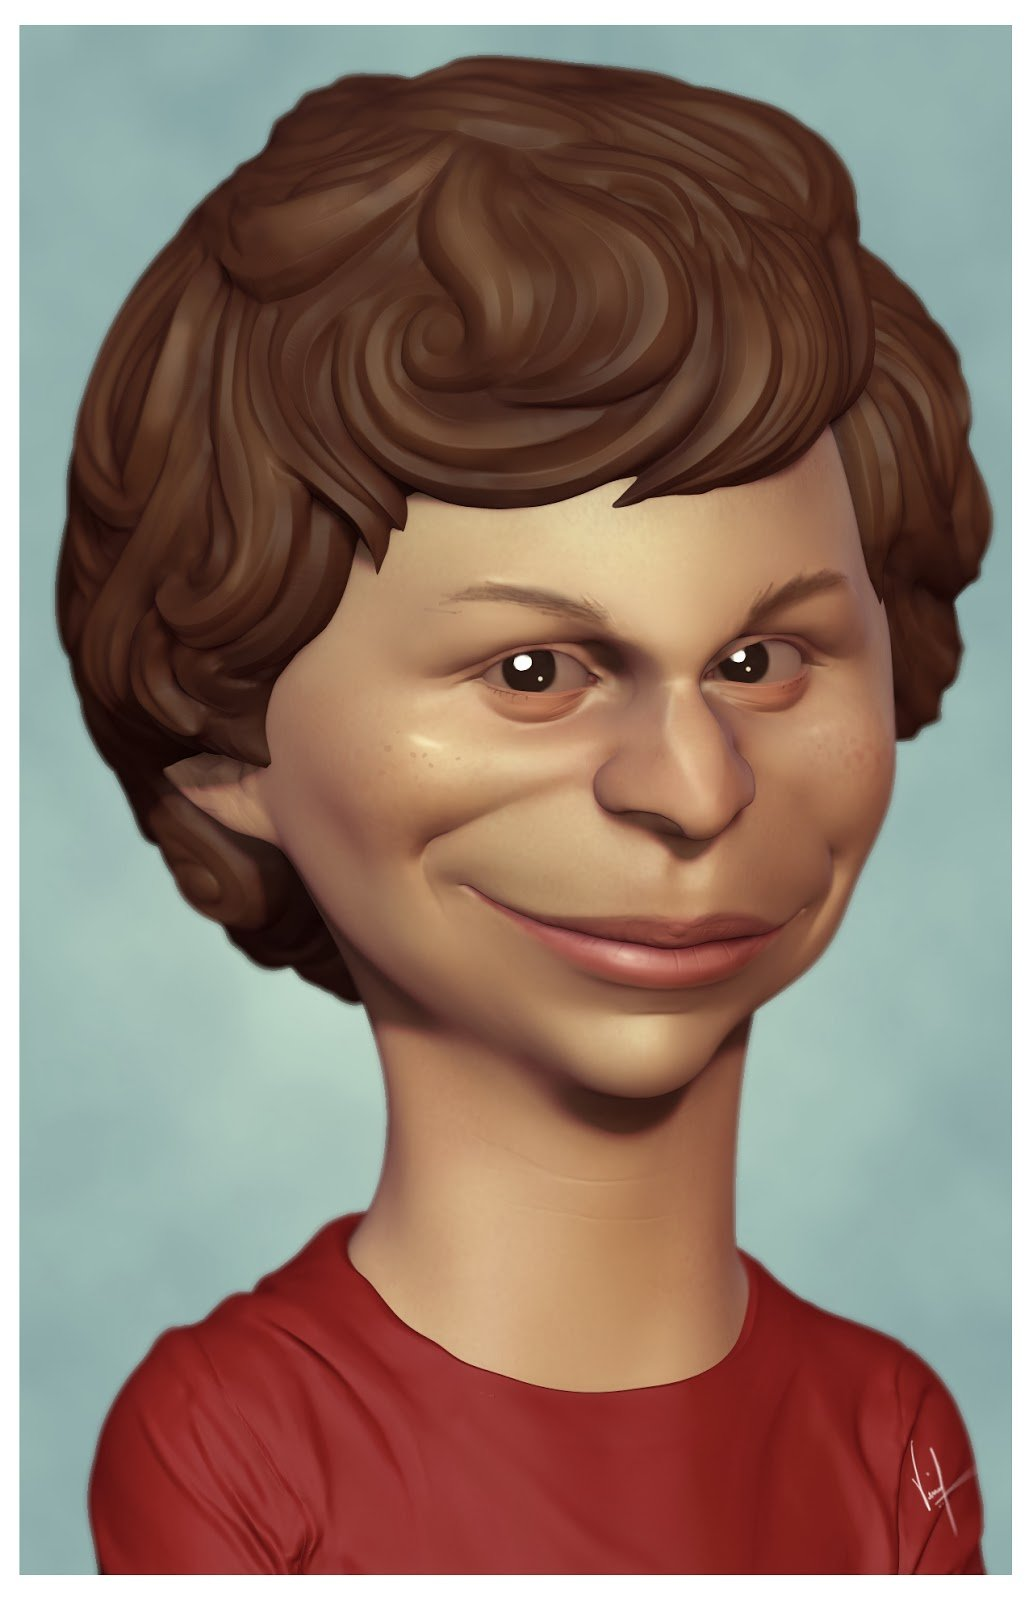 Michael Cera- Caricature Sketch